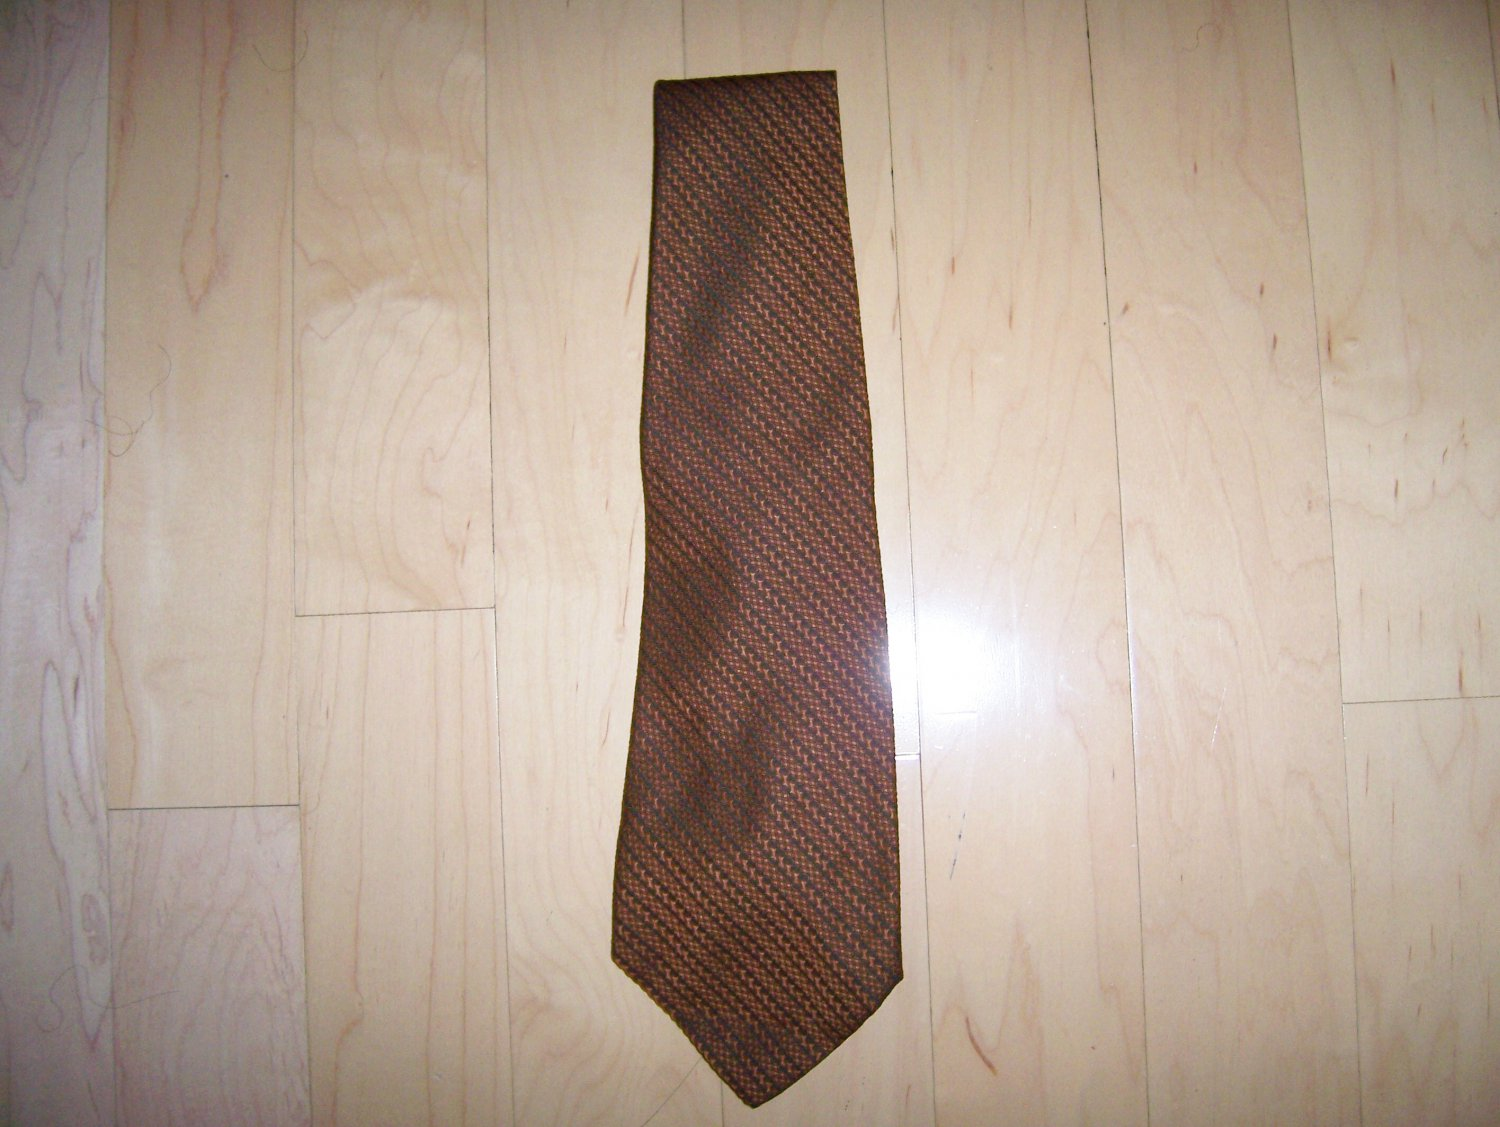 Tie Redish Brown W Black Stripes By Wm M Frazin USA BNK1483